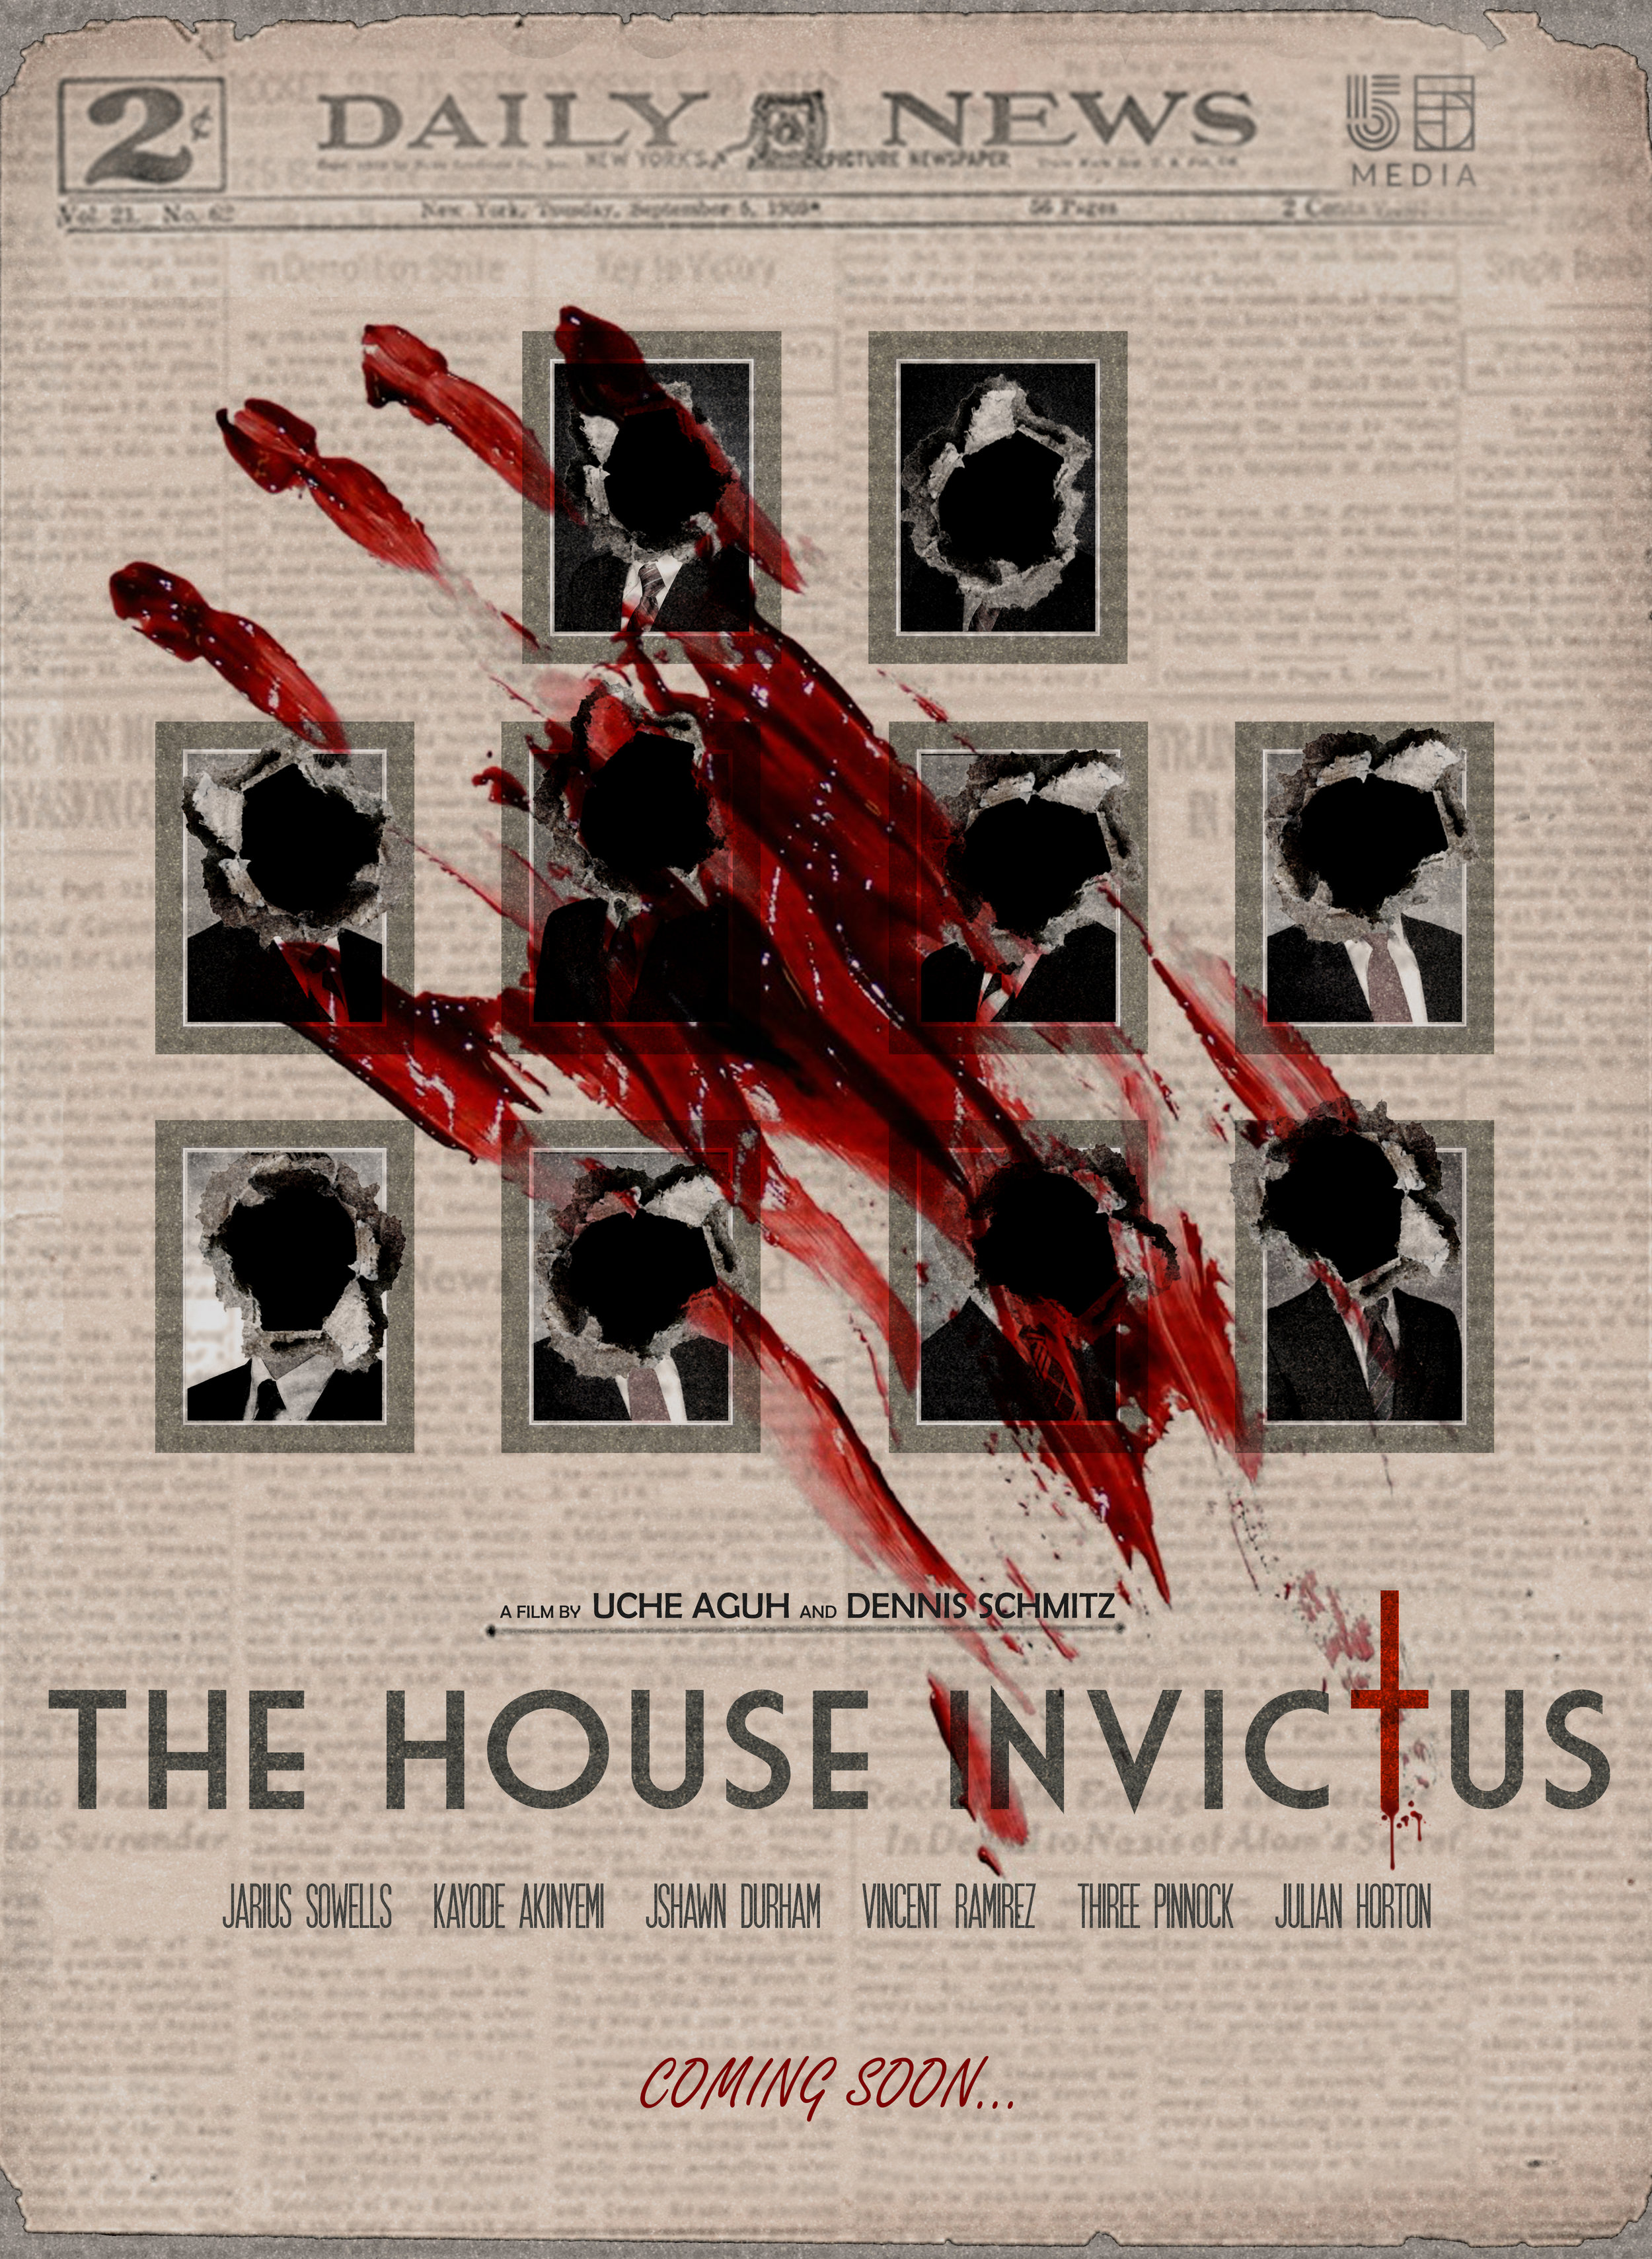 The House invictus Poster.jpg